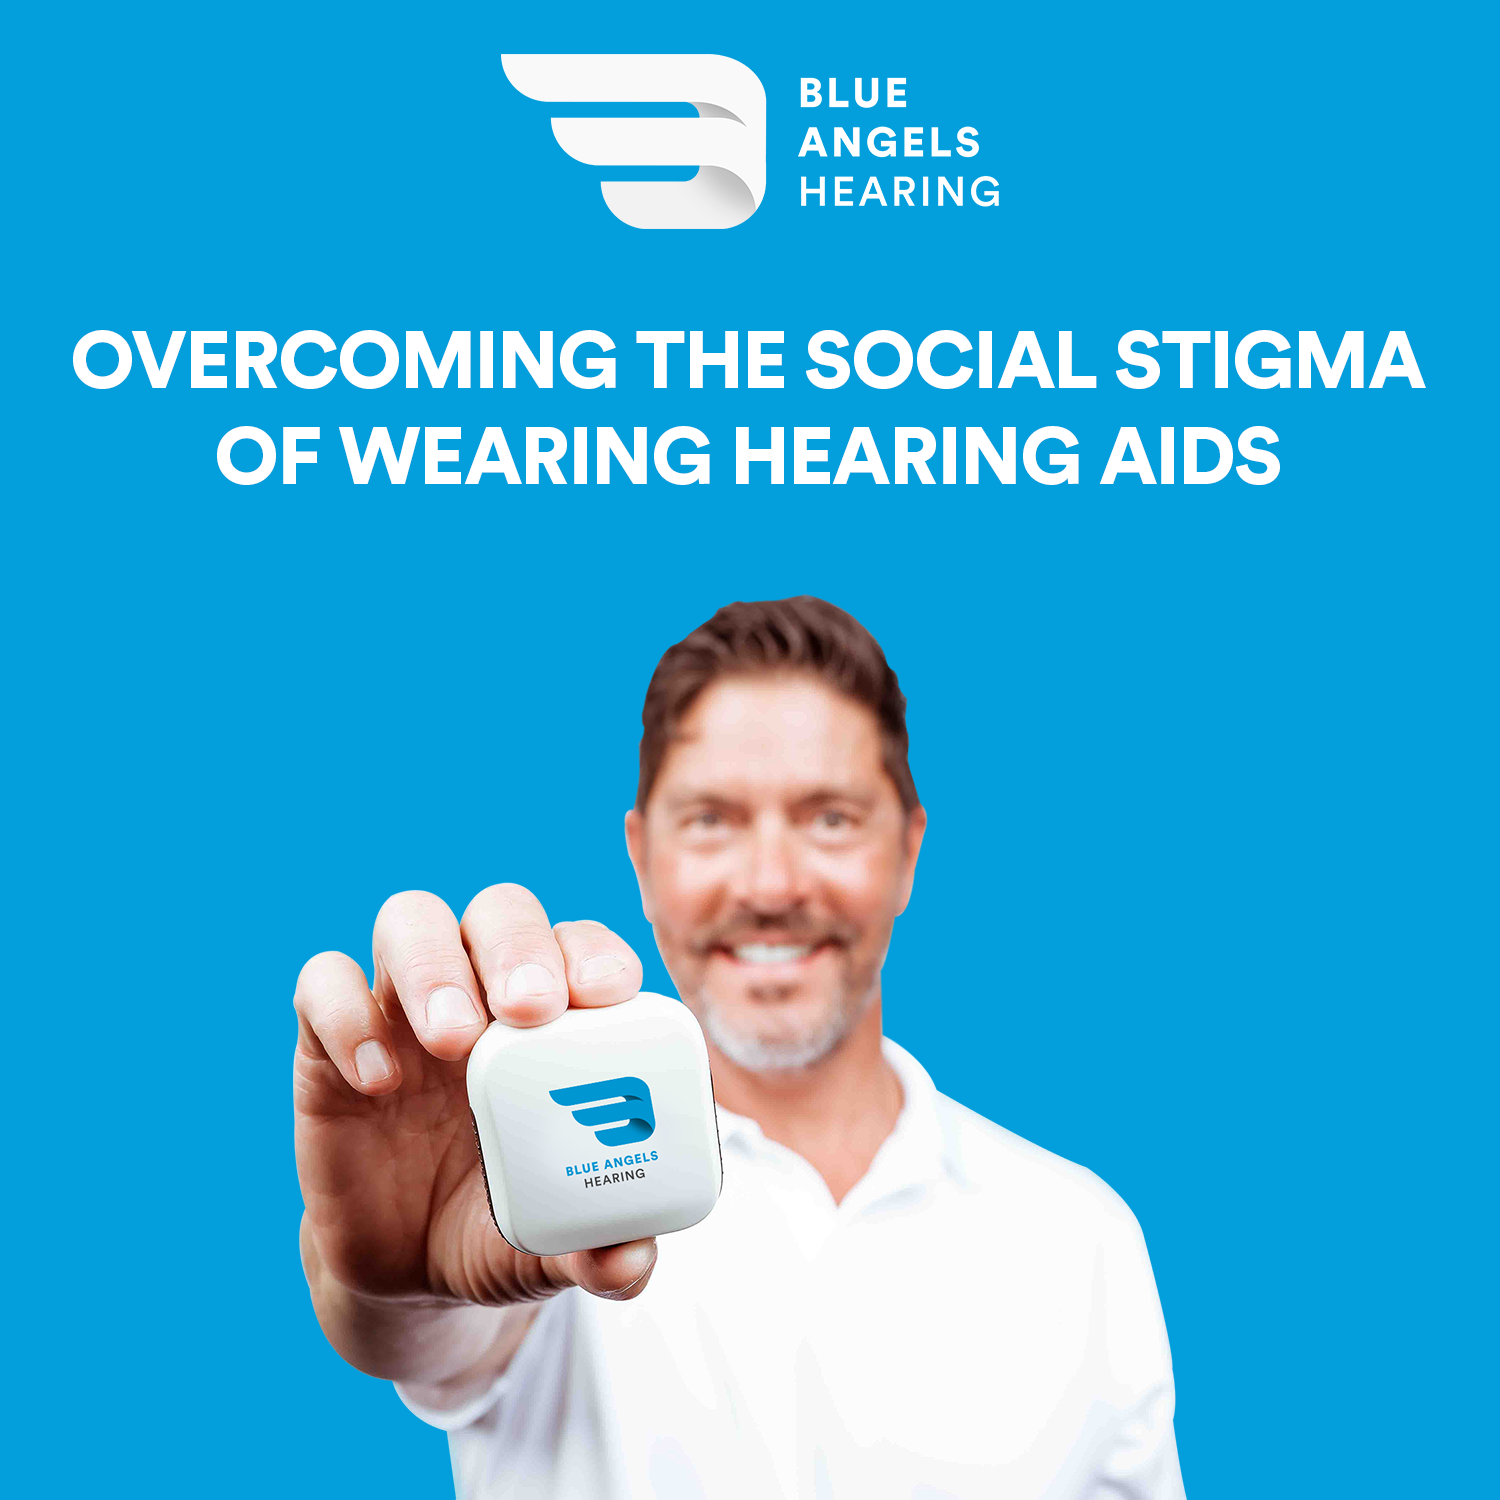 Overcoming the Social Stigma of Wearing Hearing Aids